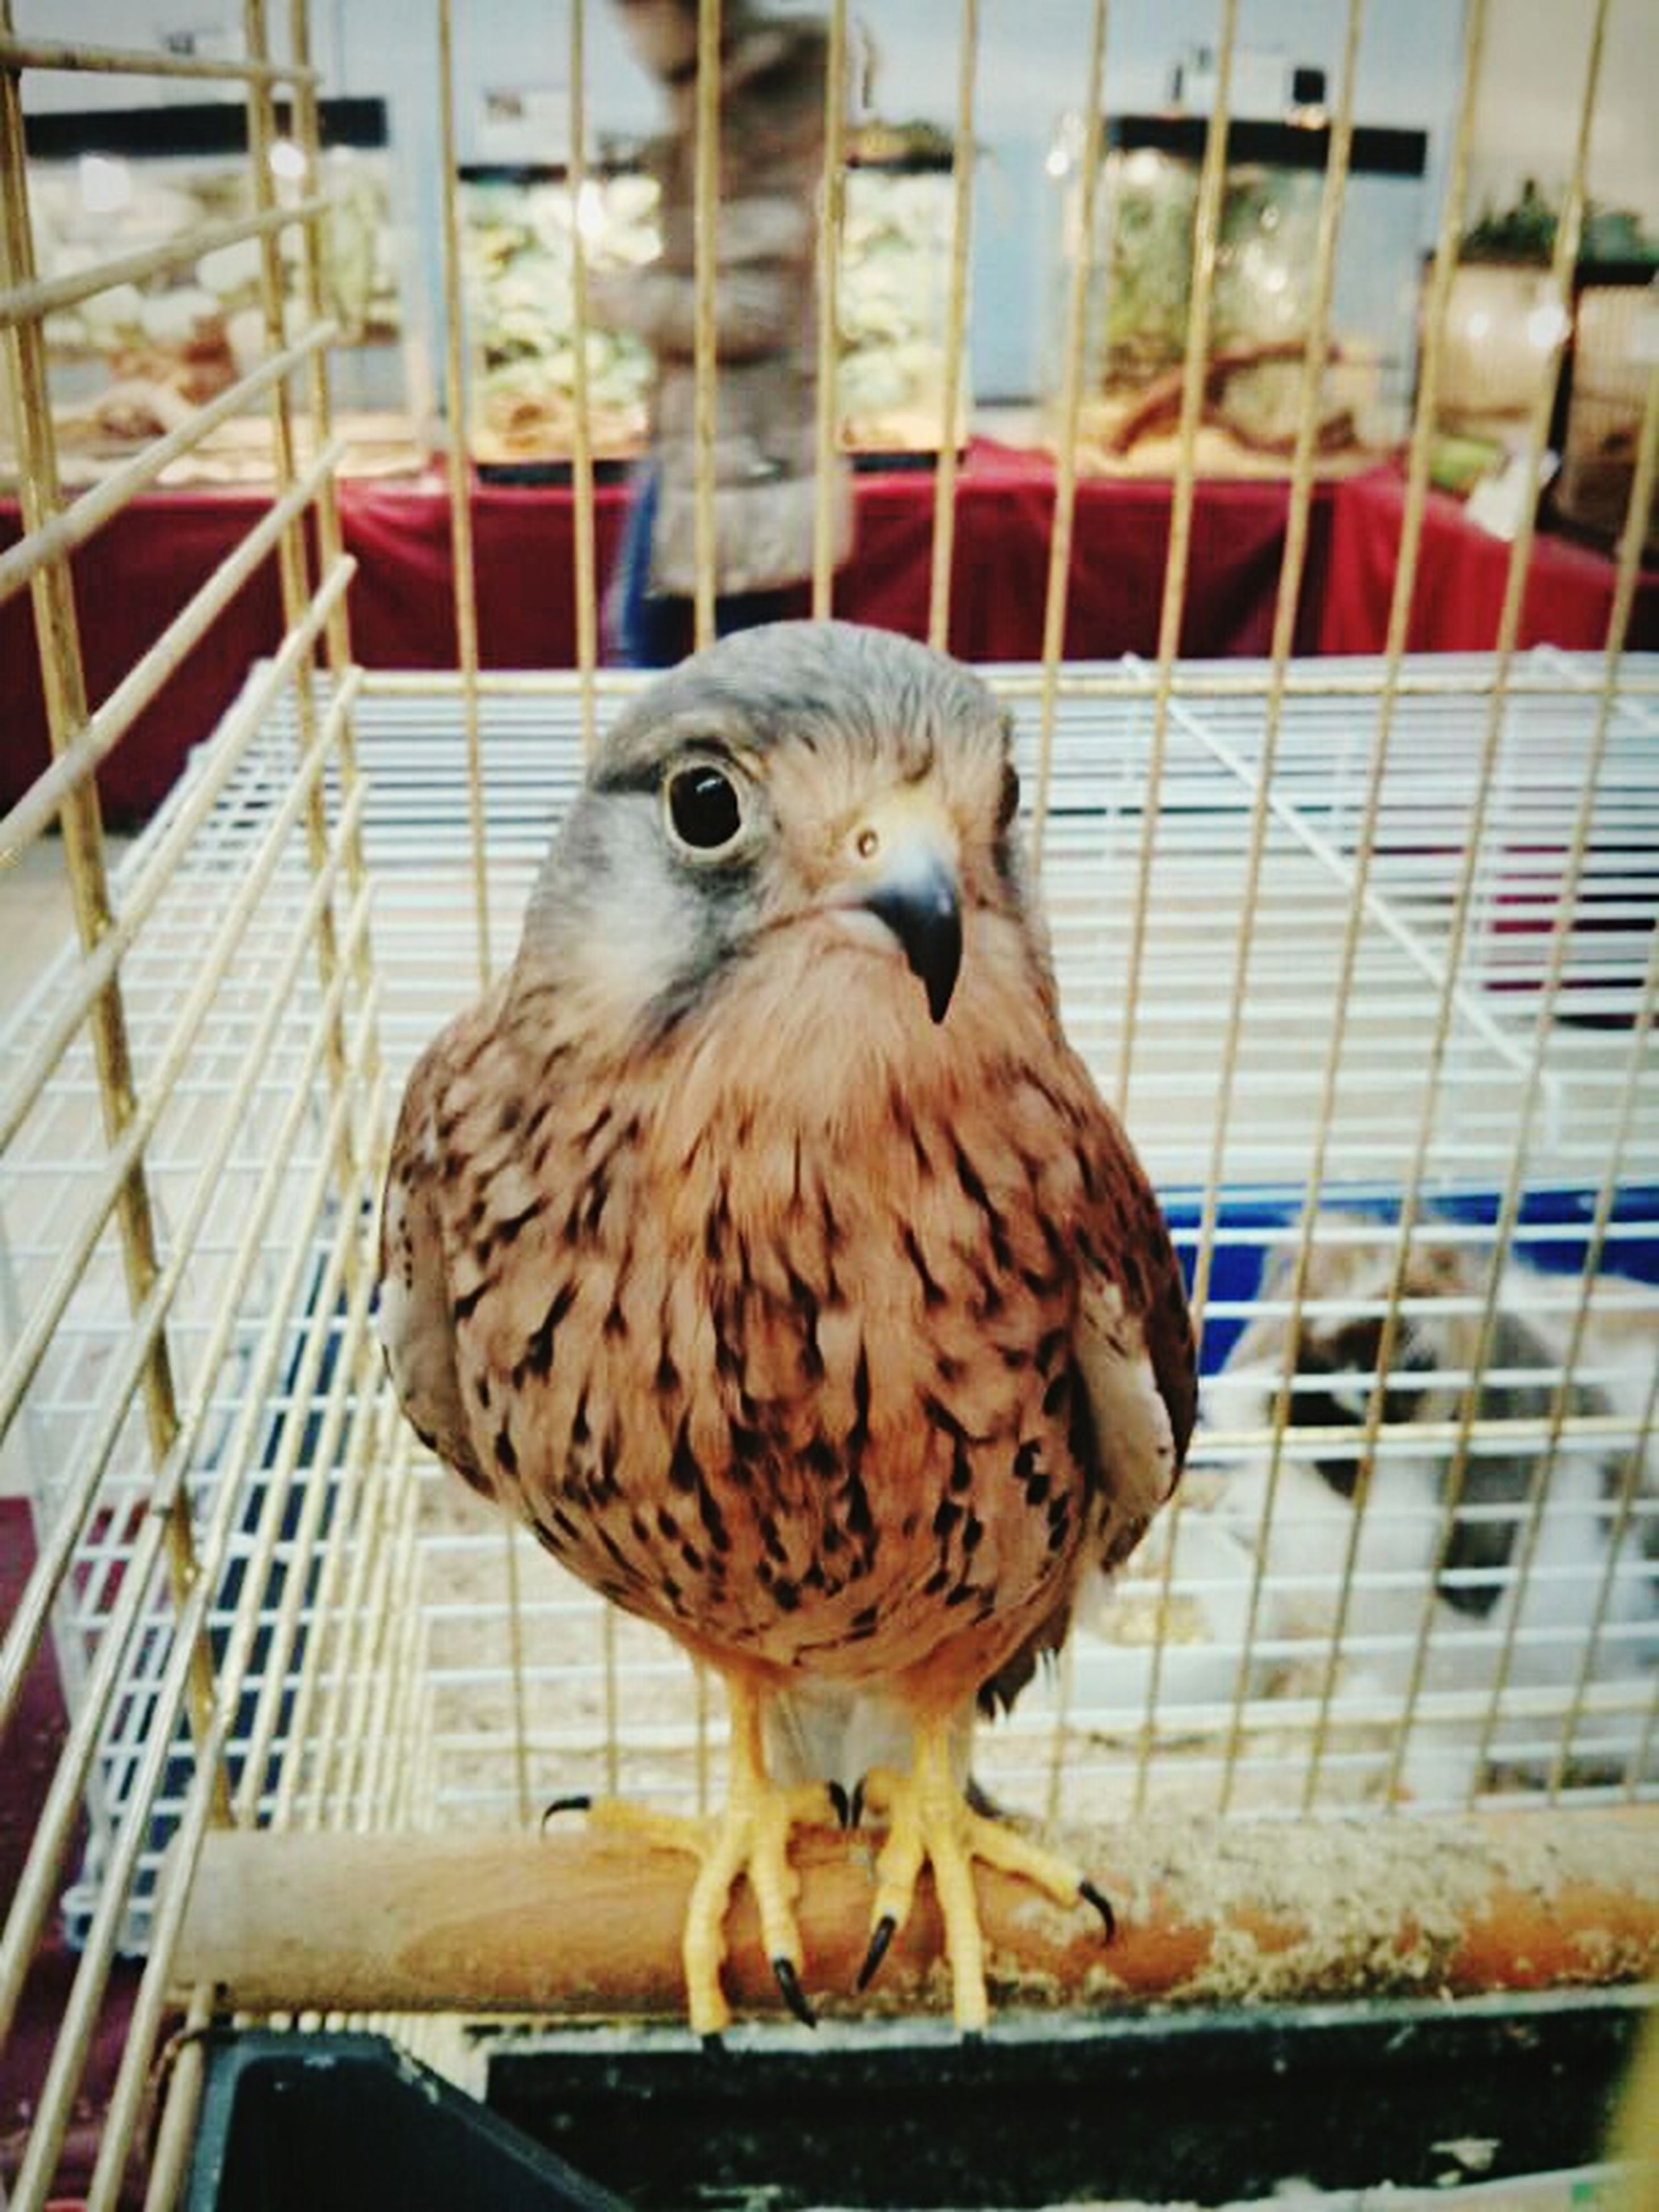 animal themes, bird, one animal, cage, focus on foreground, close-up, indoors, perching, wildlife, animals in the wild, birdcage, beak, looking at camera, railing, full length, no people, animals in captivity, animal head, portrait